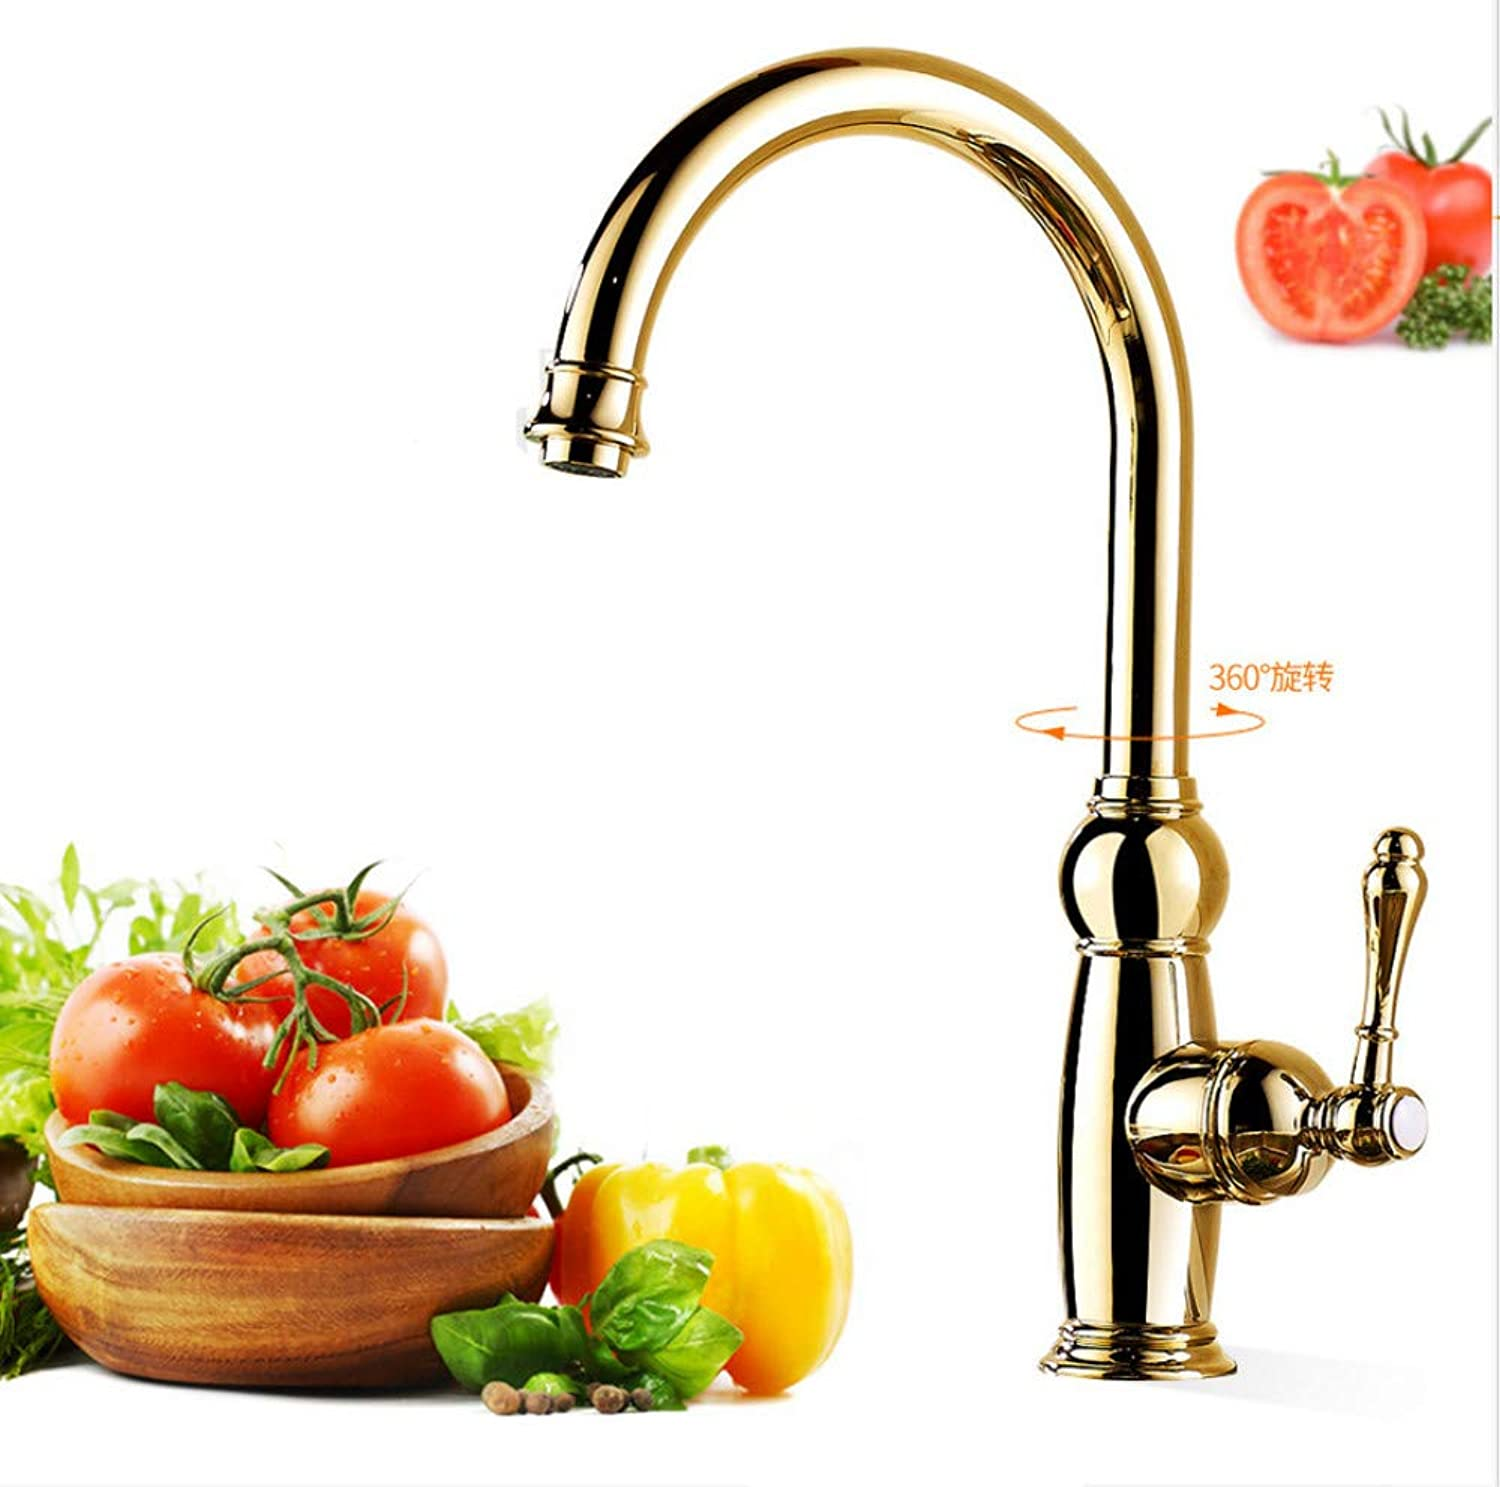 JONTON golden kitchen sink hot and cold faucet copper thickening can be redated European antique sink sink faucet